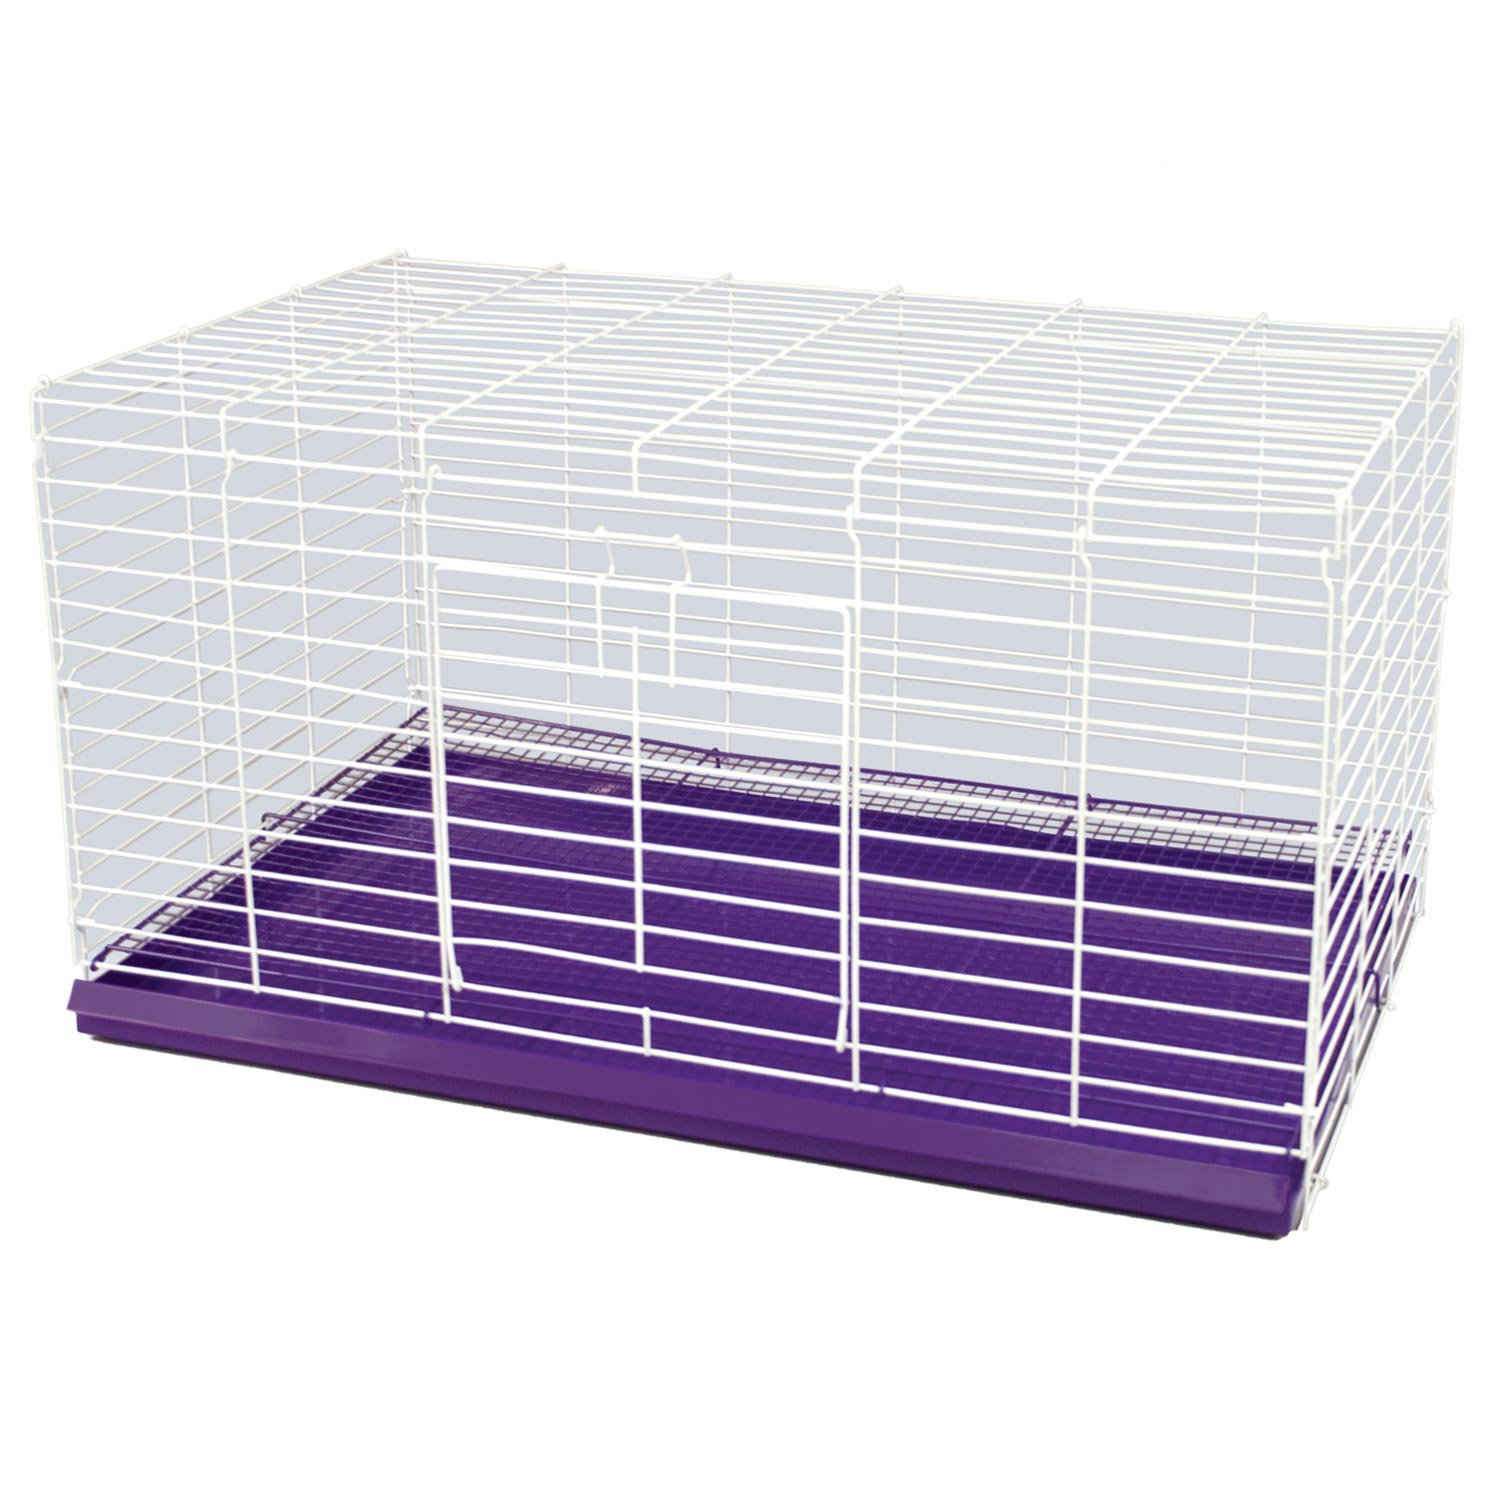 Medium 30L x 18W x 16H inches Ware Manufacturing 30-Inch Chew Proof Rabbit Cage